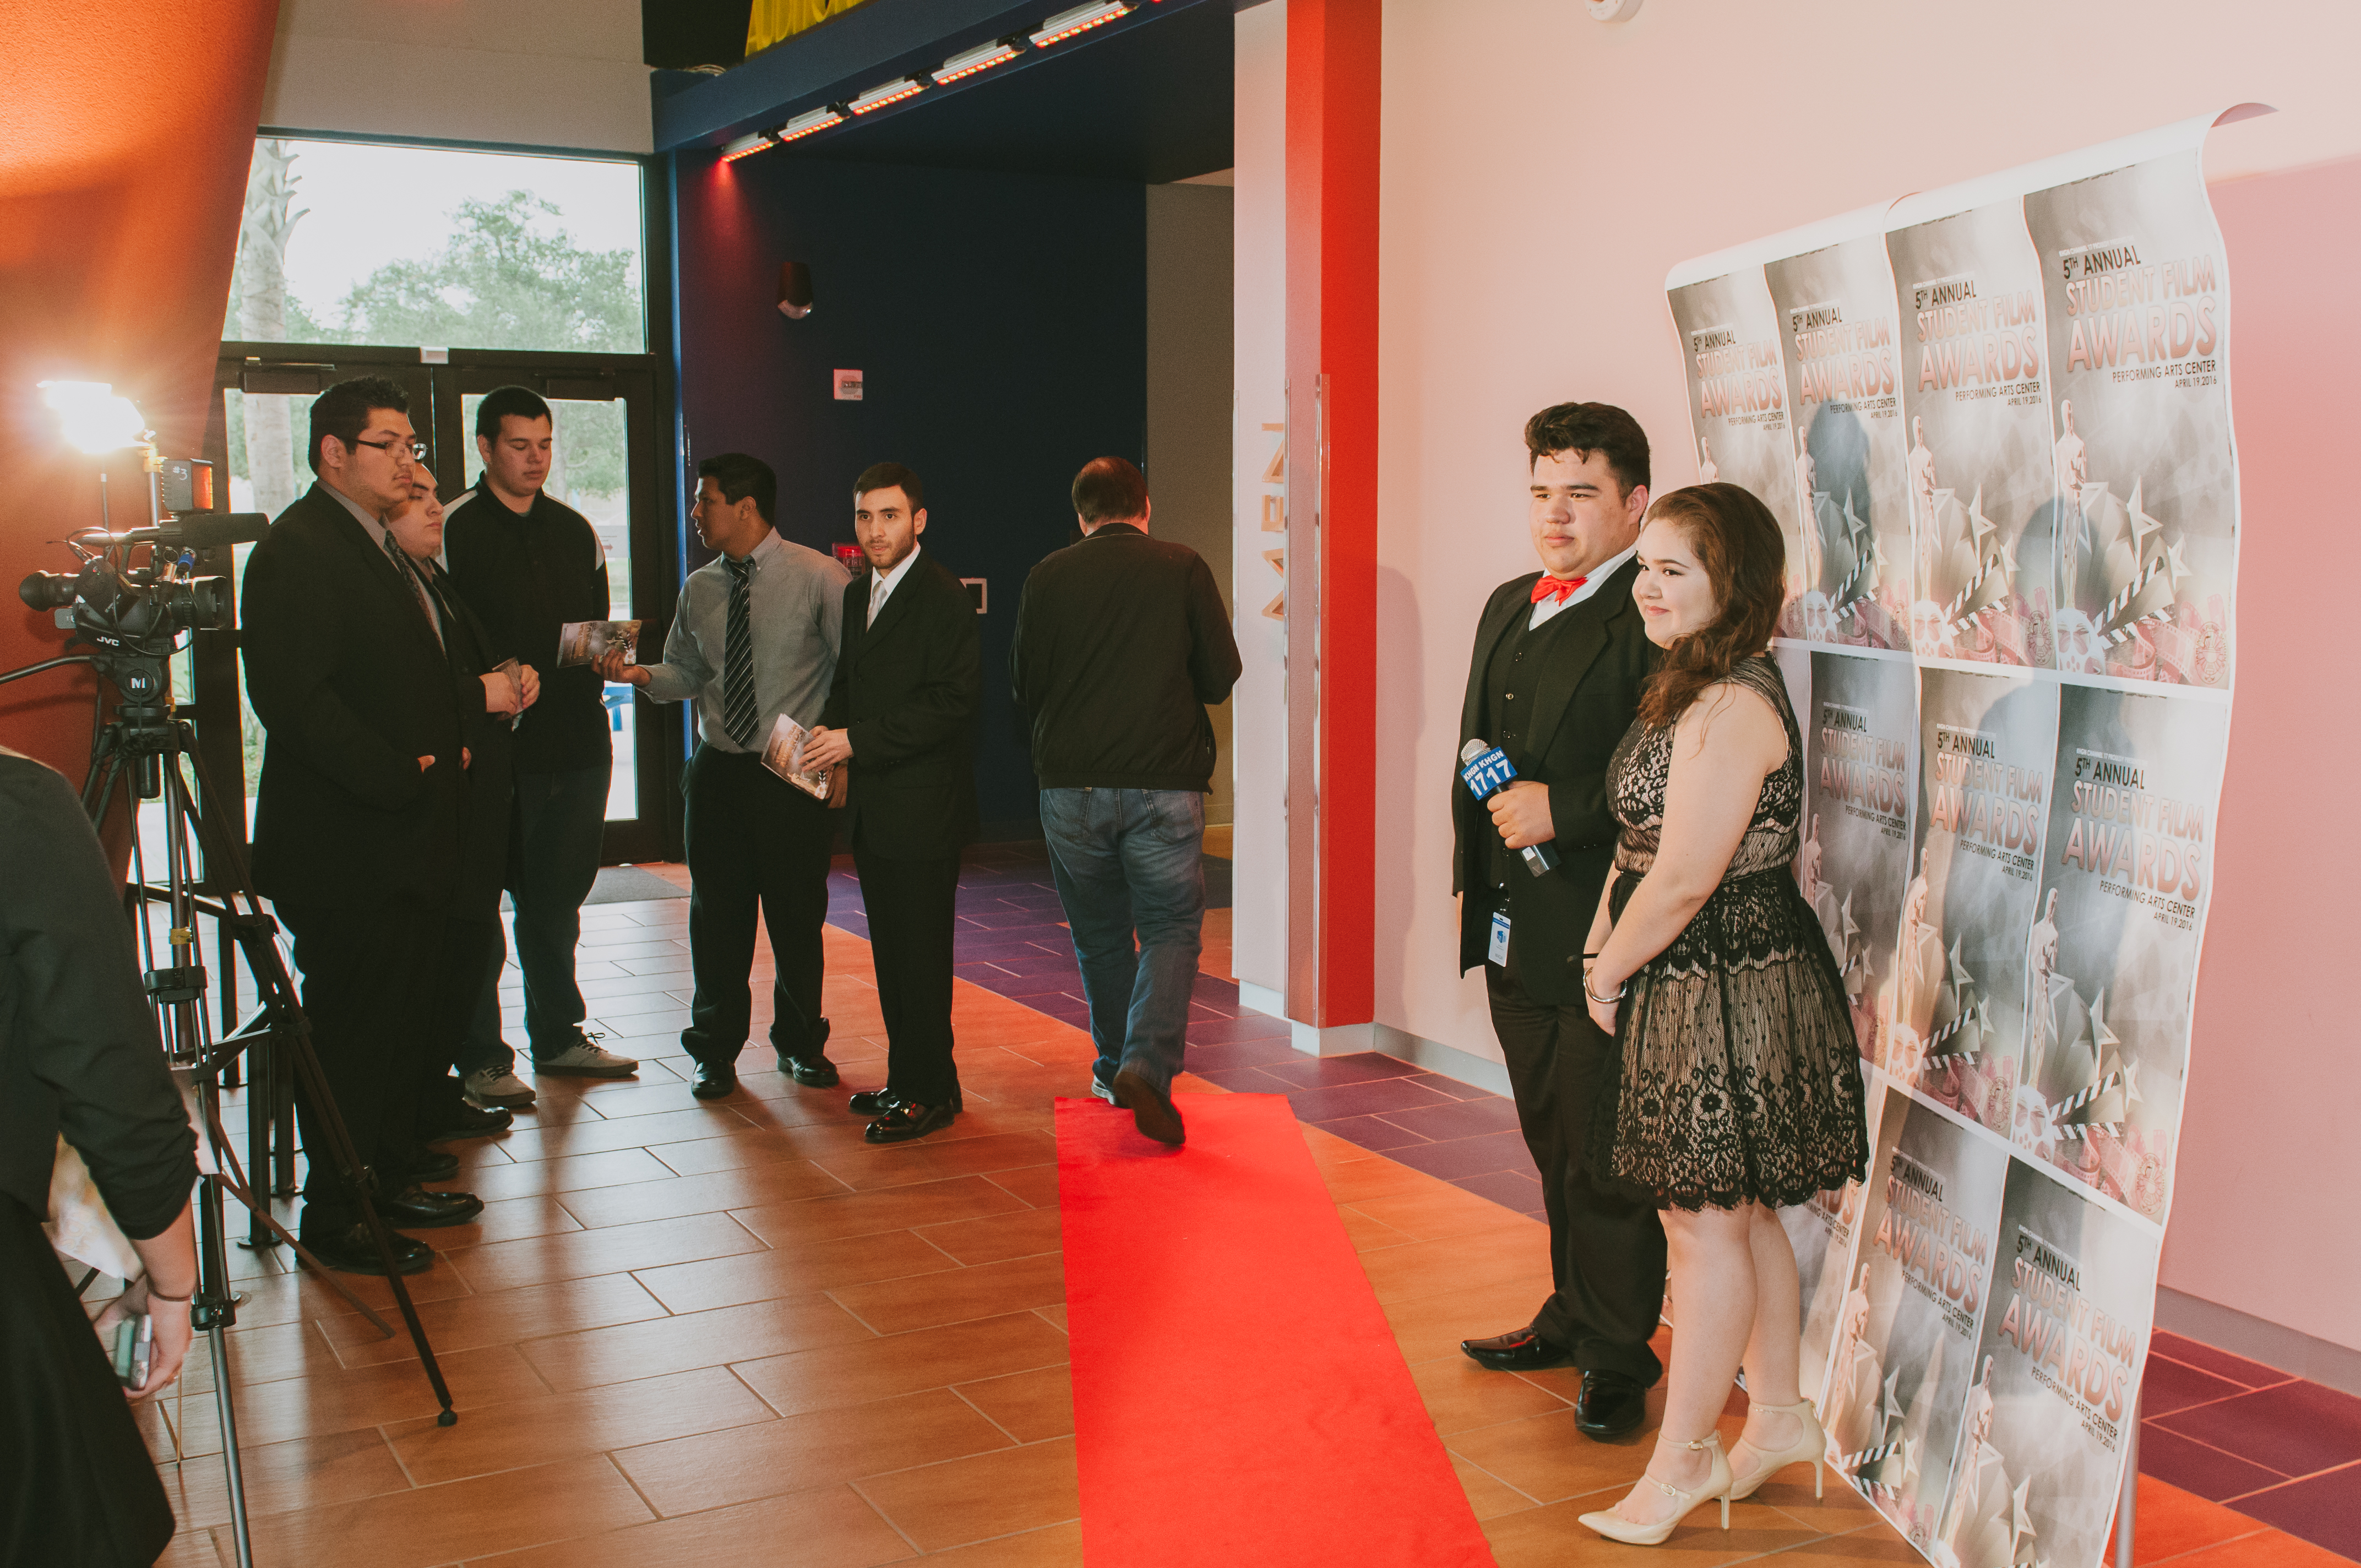 Student filmmakers honored at 5th Annual Student Film Awards